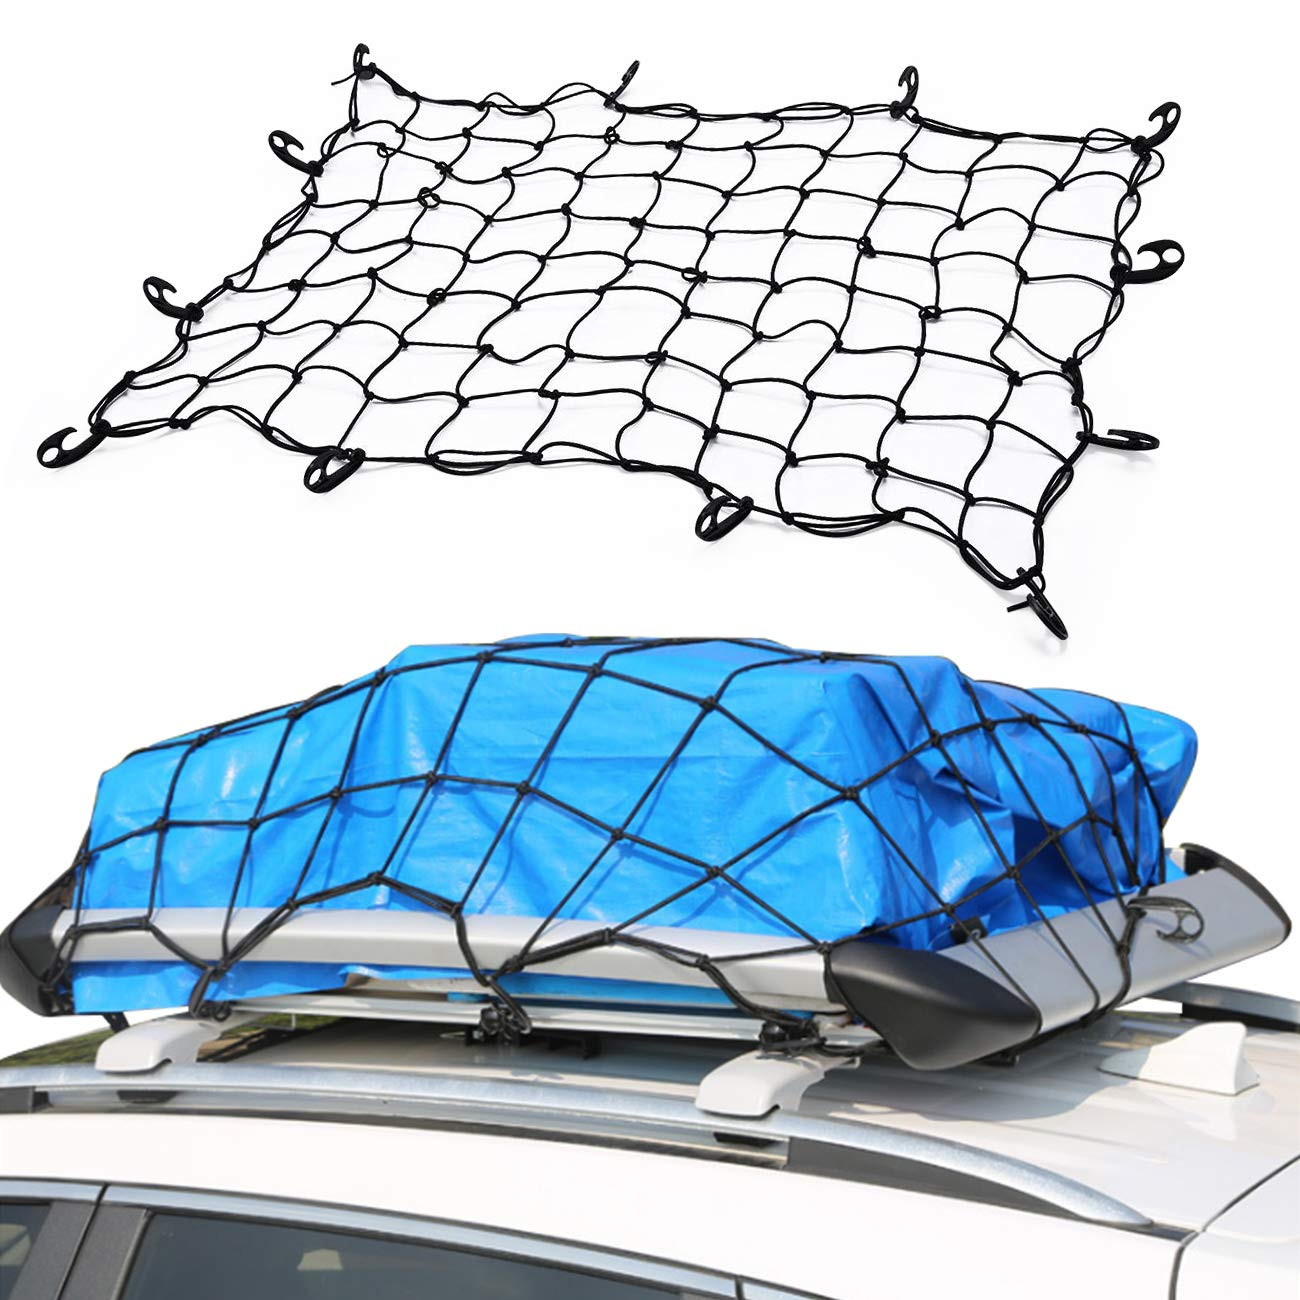 ALAVENTE 100 x 100cm// 39.4 x 39.4 12 x Big Hooks Heavy Duty Cargo Carrier Net for securing Boxes,in Pickup Truck Bed Hitch Cargo Carrier and roof Luggage Rack Cargo Basket